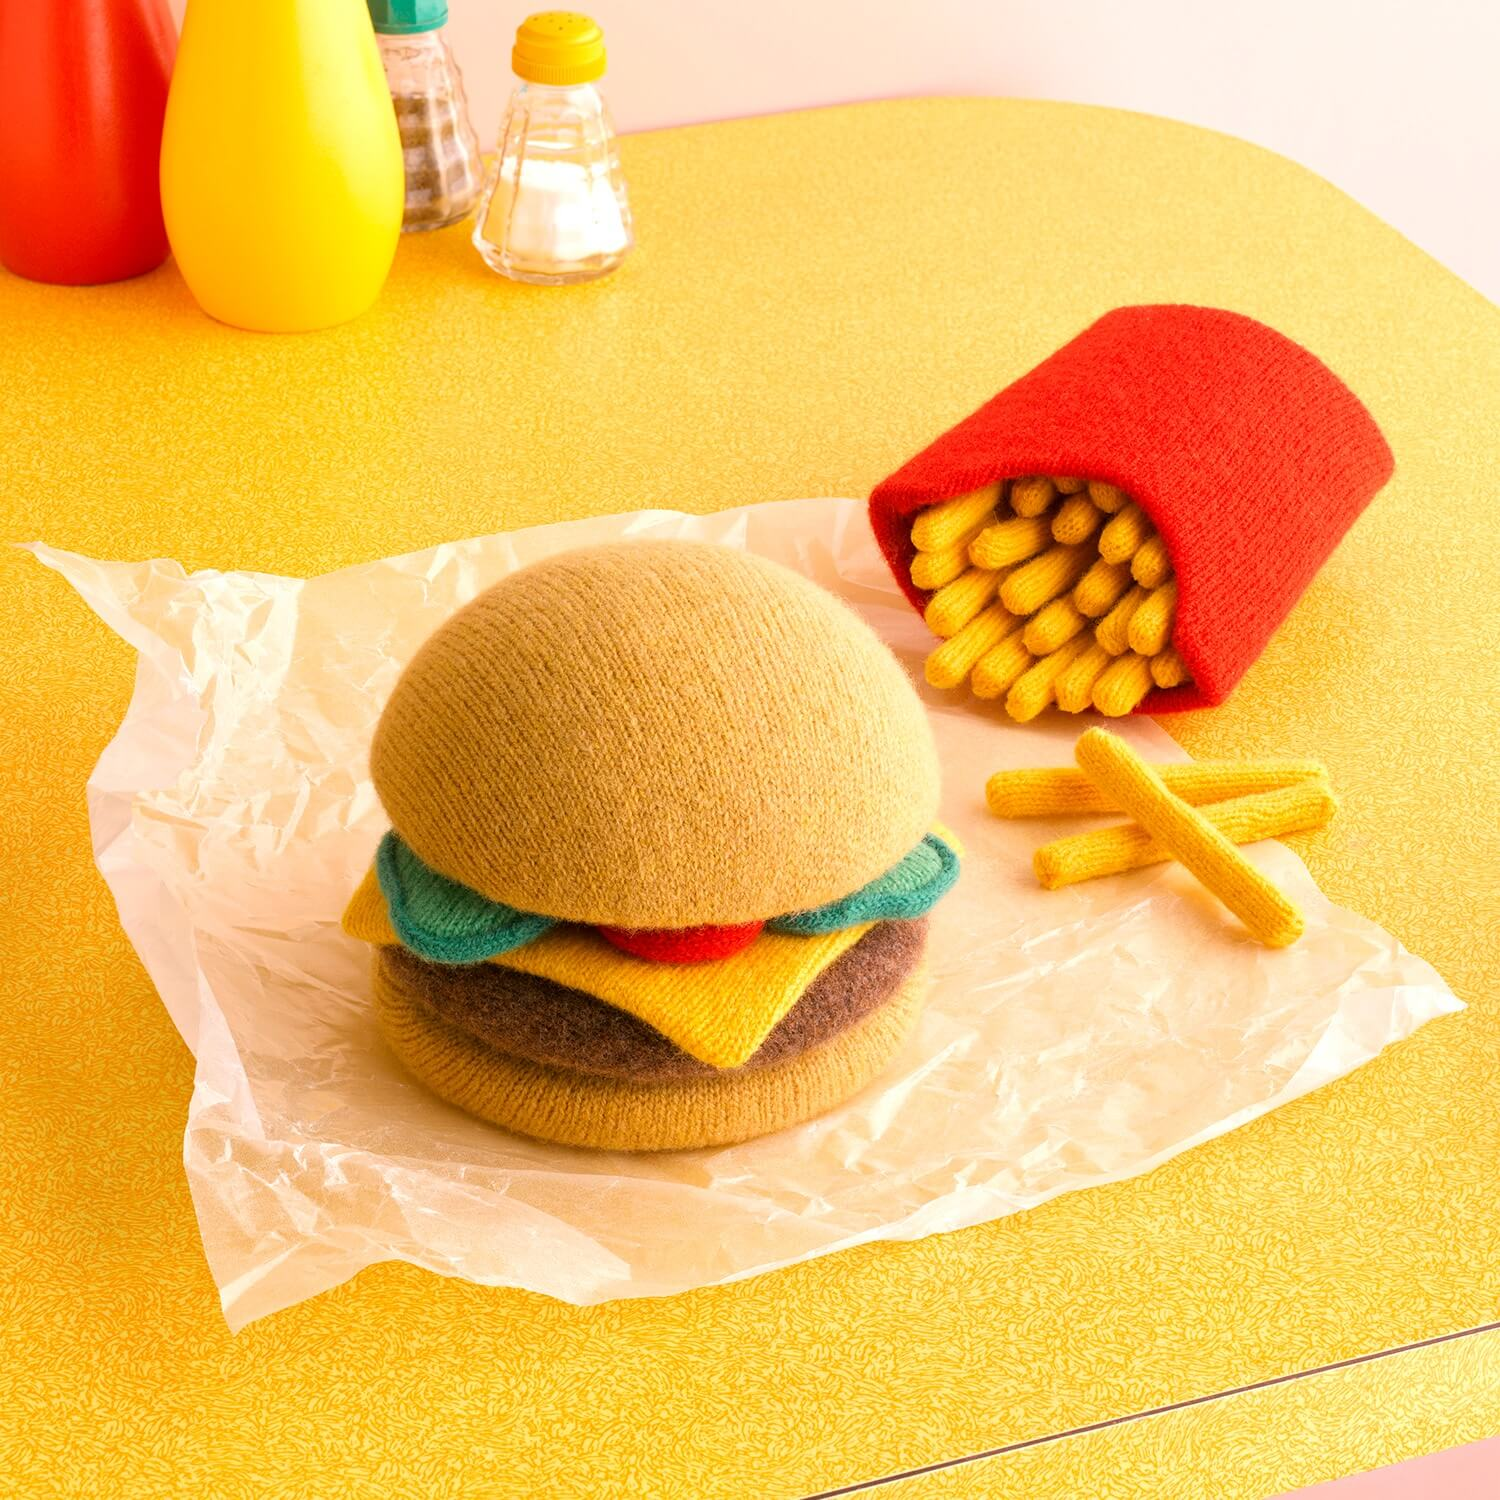 Burger by Jessica Dance